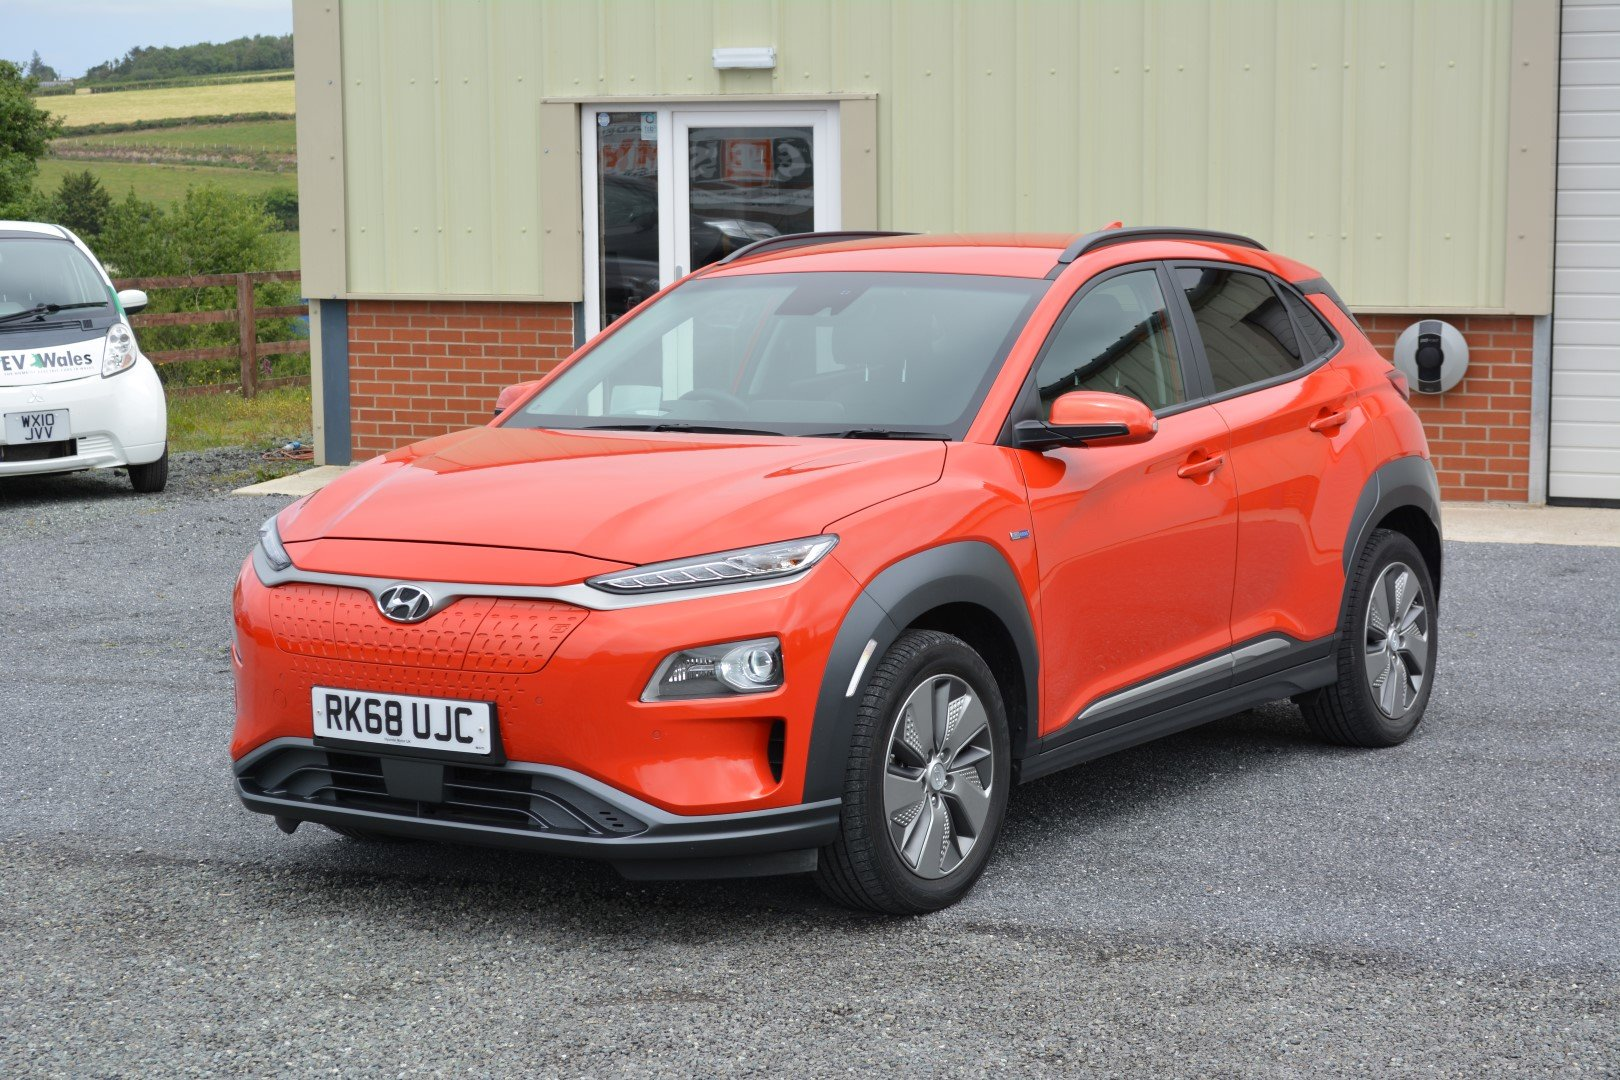 2018 Hyundai Kona Fully Electric - Massive 279 mile range! For Sale (picture 1 of 6)